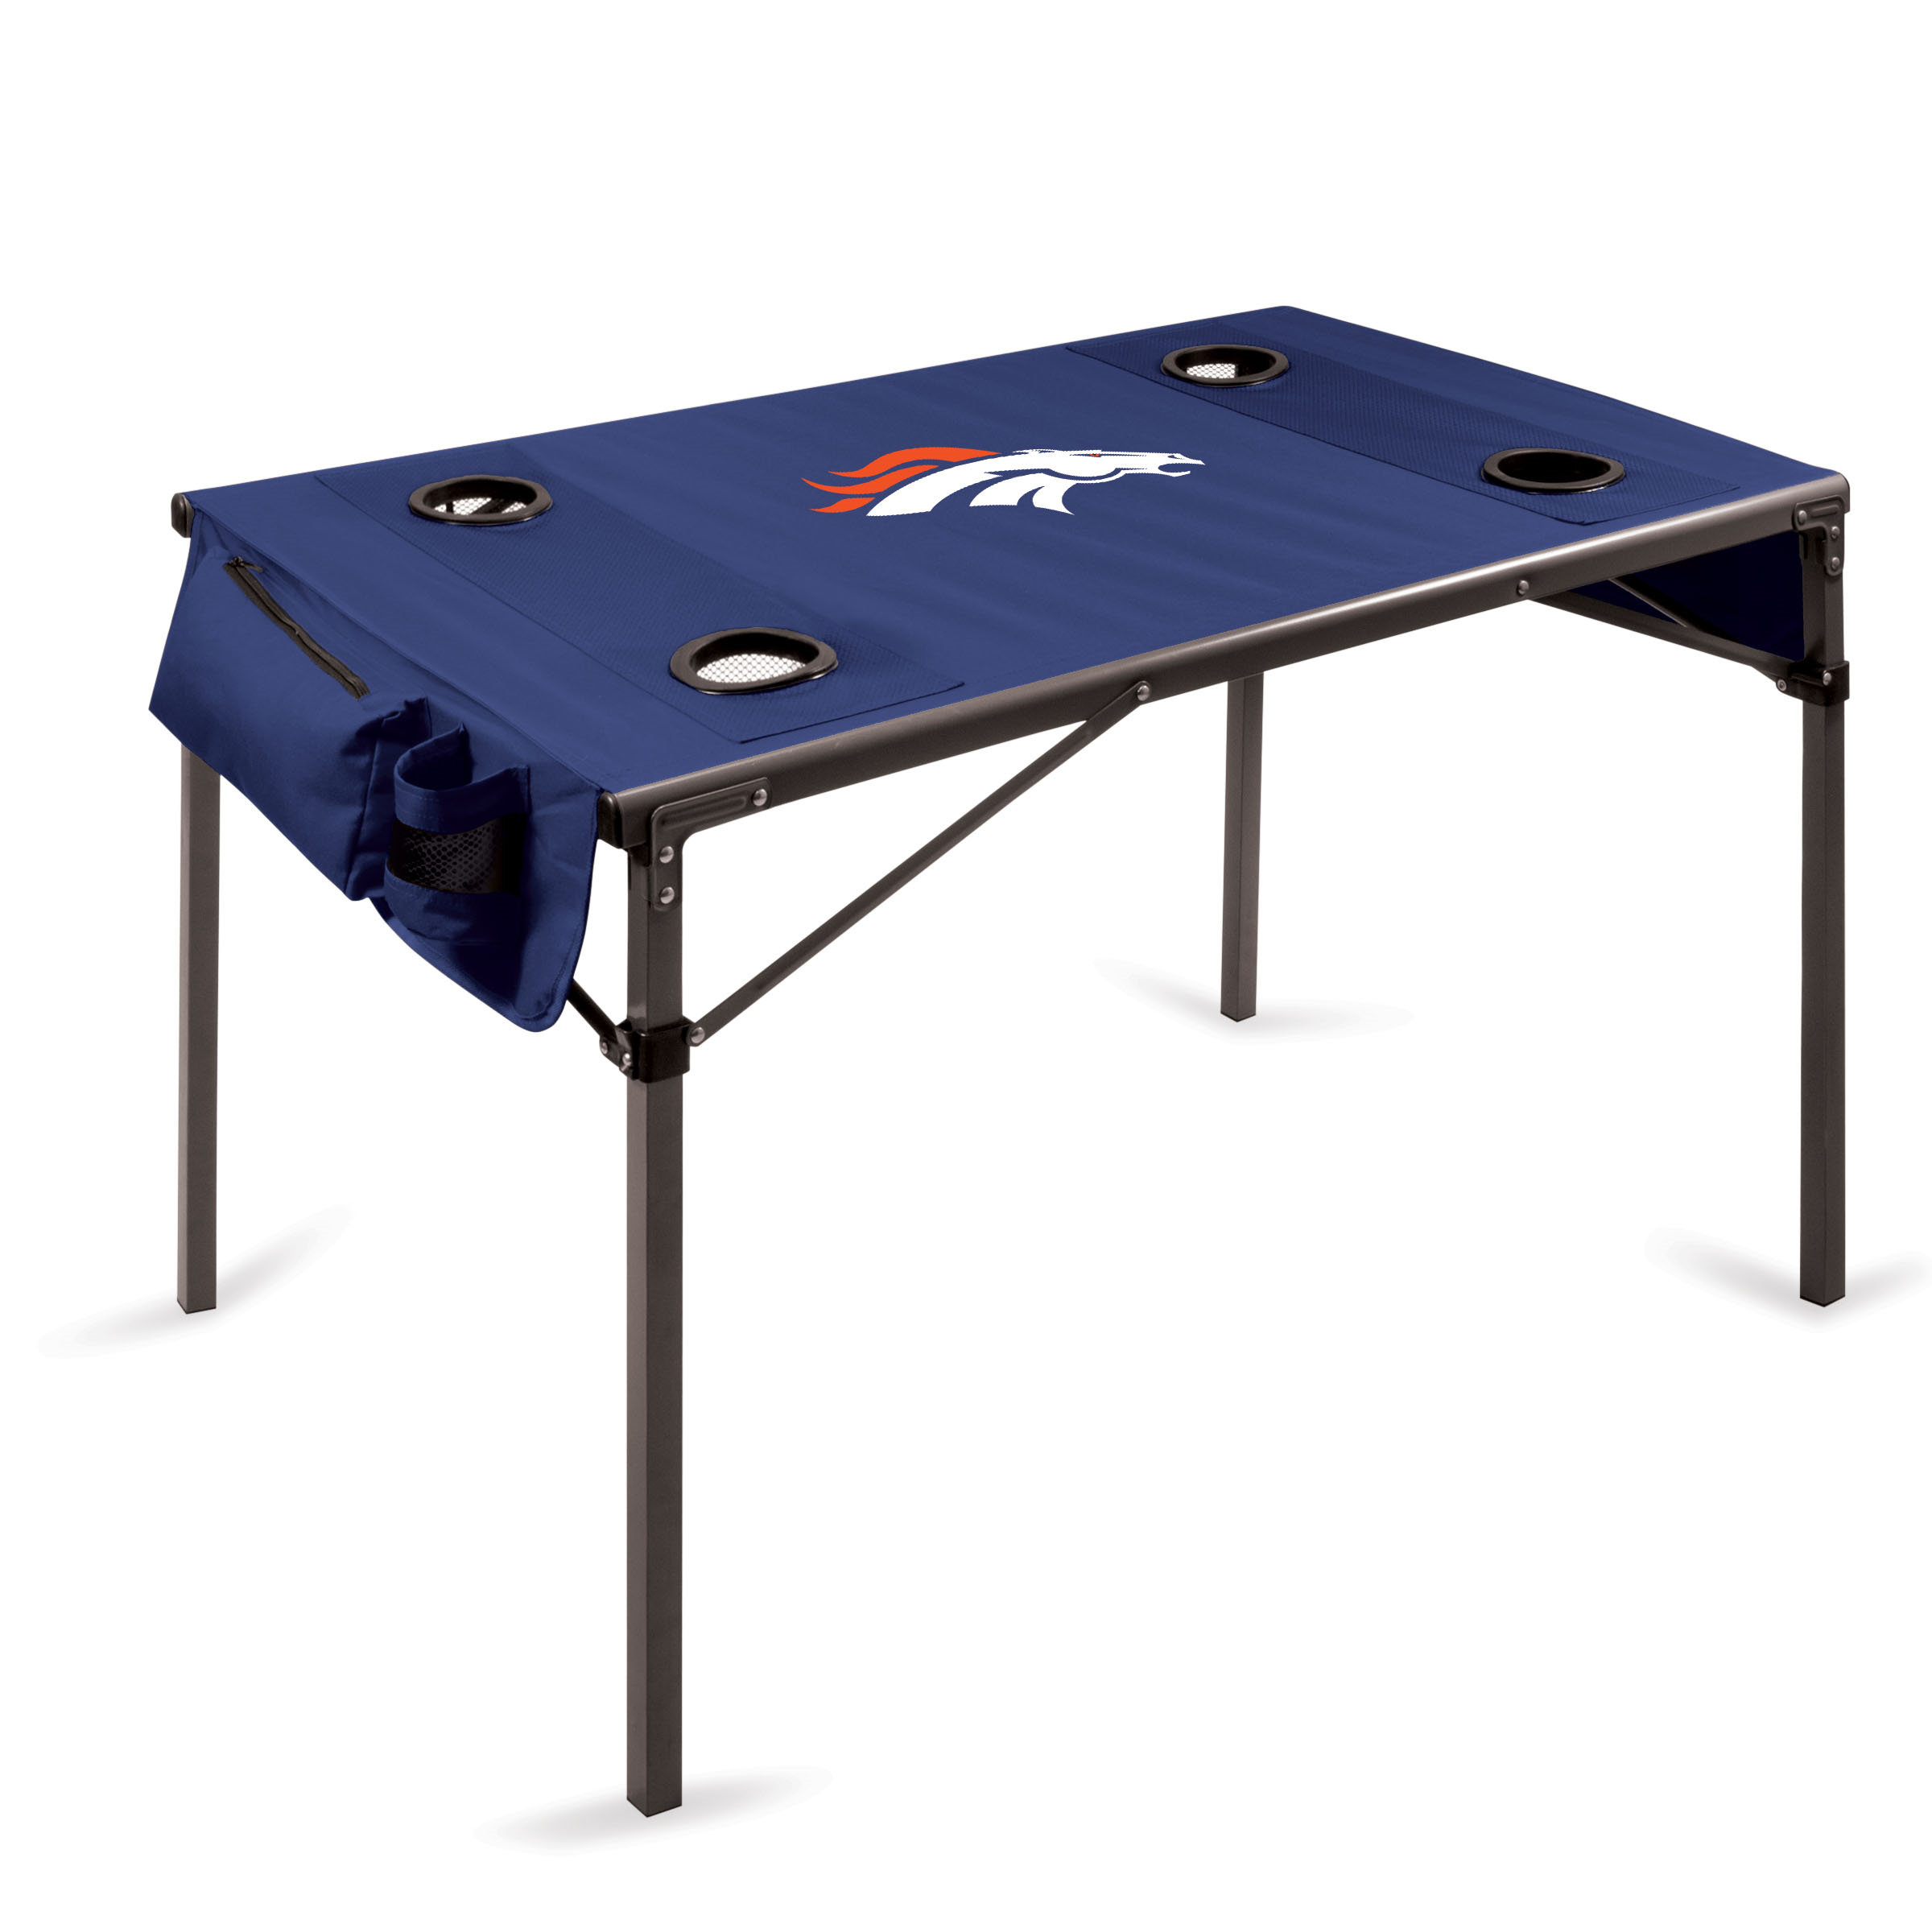 Picnic Time Nfl Travel Table Denver Broncos